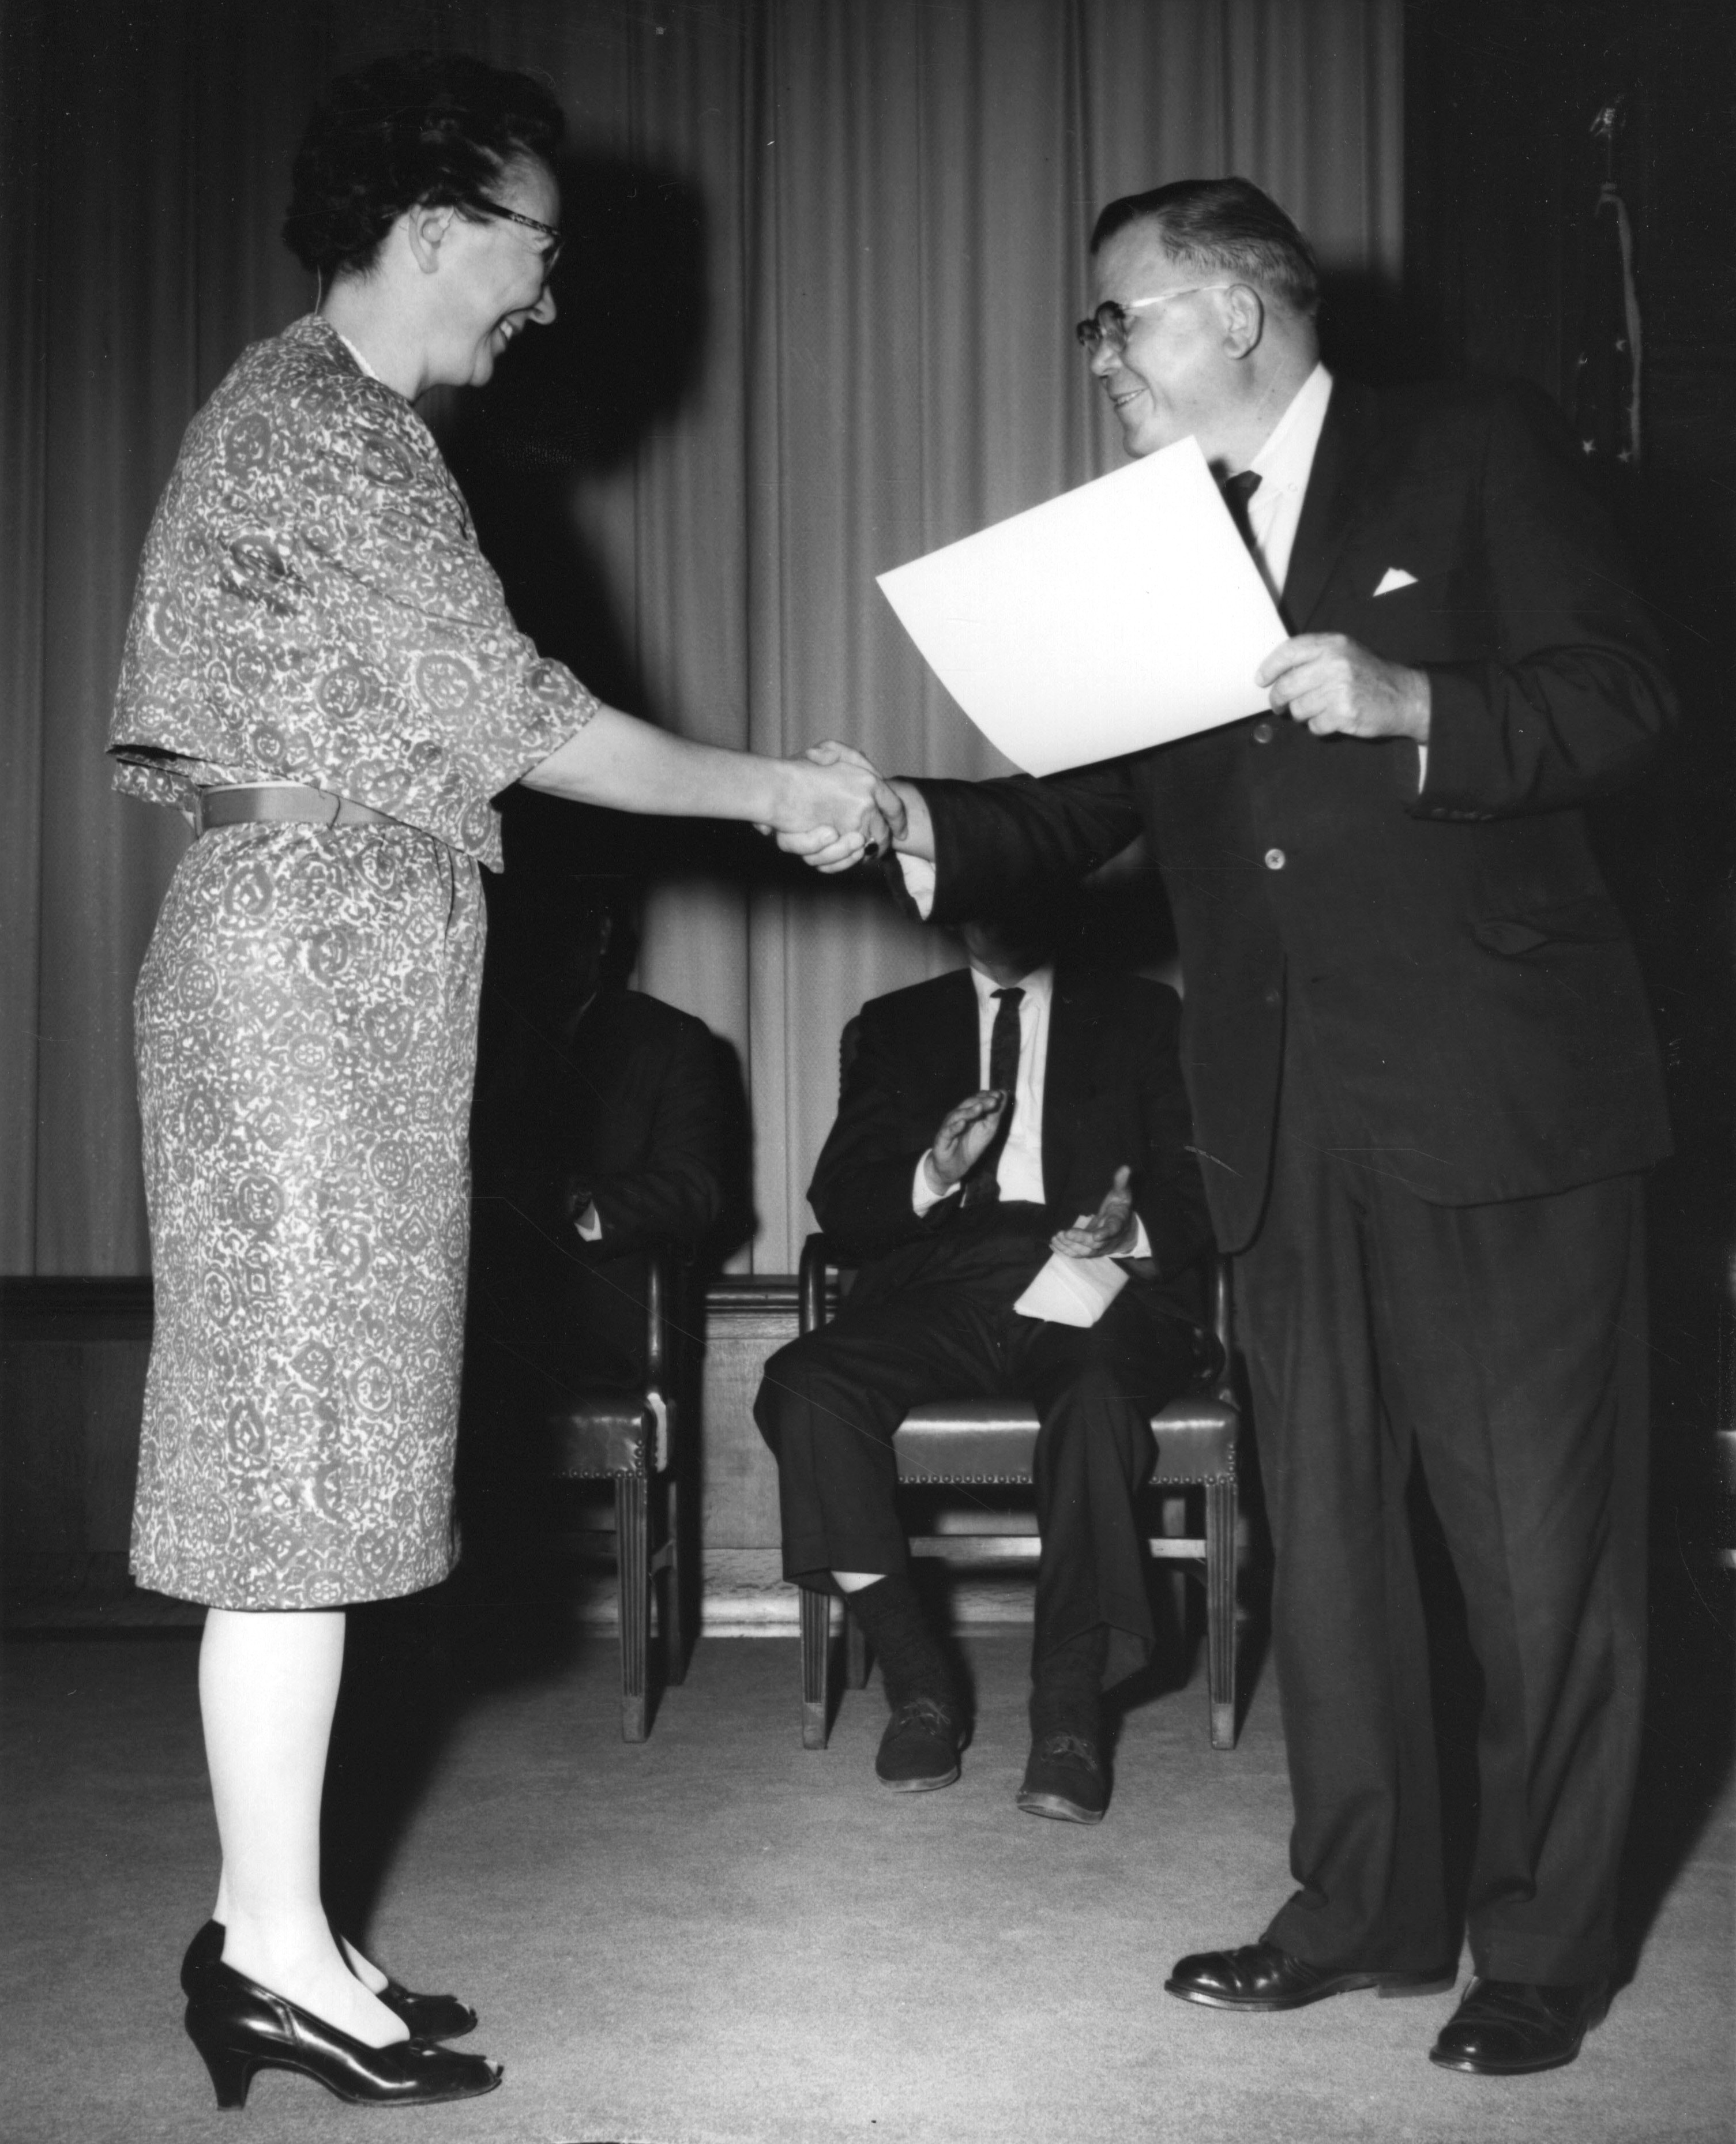 Mabel Deutrich receives Commendable Service Award from Archivist Wayne Grover, Sept. 19, 1963 (National Archives, 64-NA-2255)